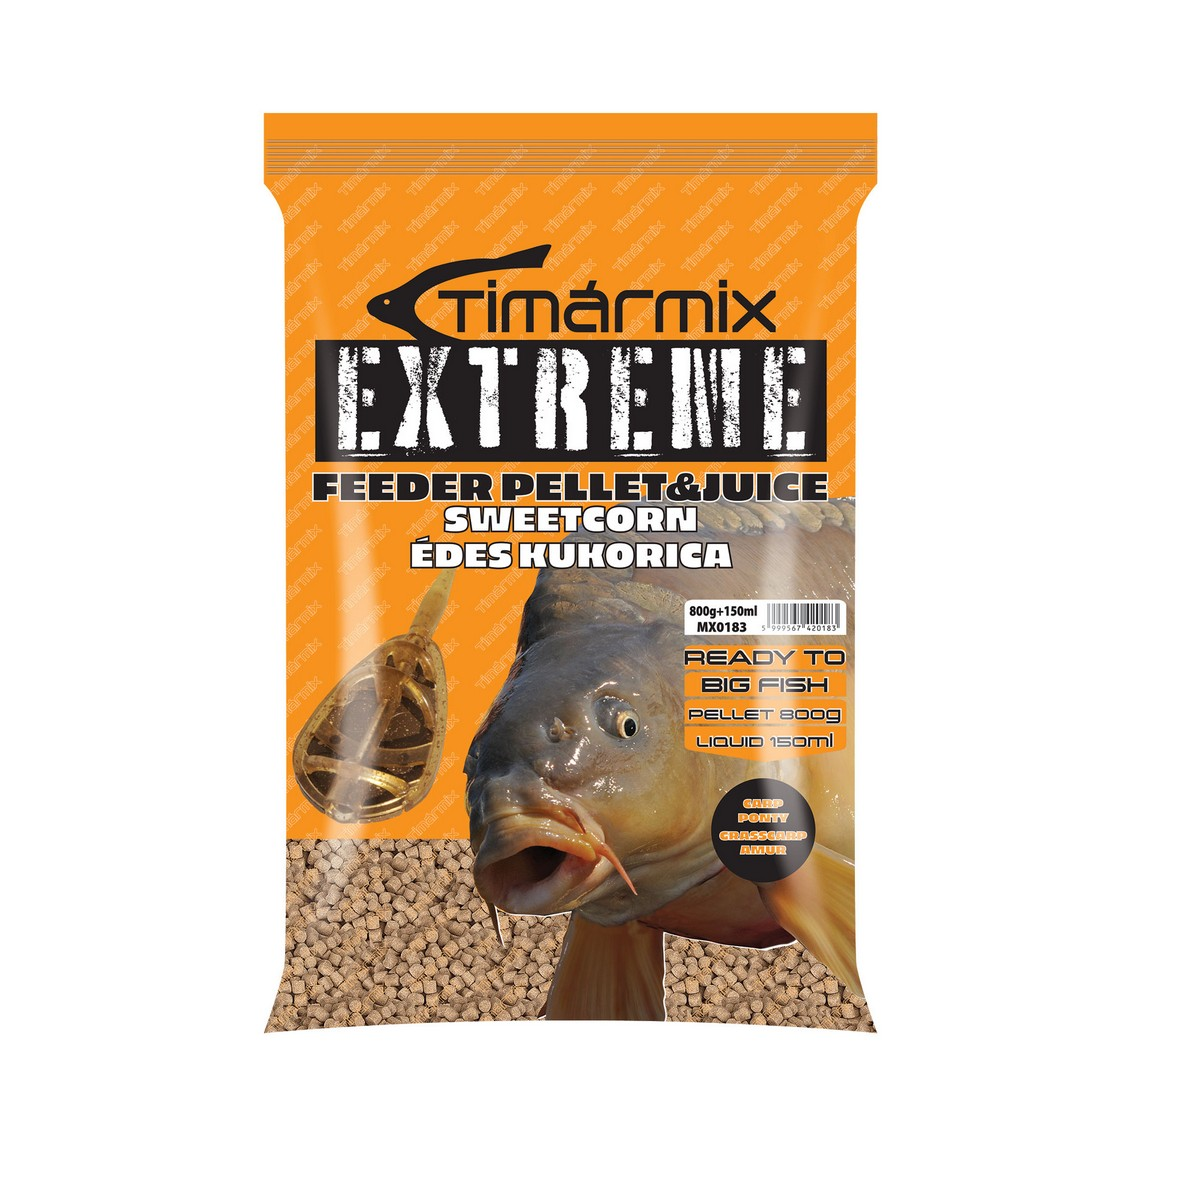 TIMÁR MIX EXTREME PELLET & JUICE SWEET CORN 800 +150G